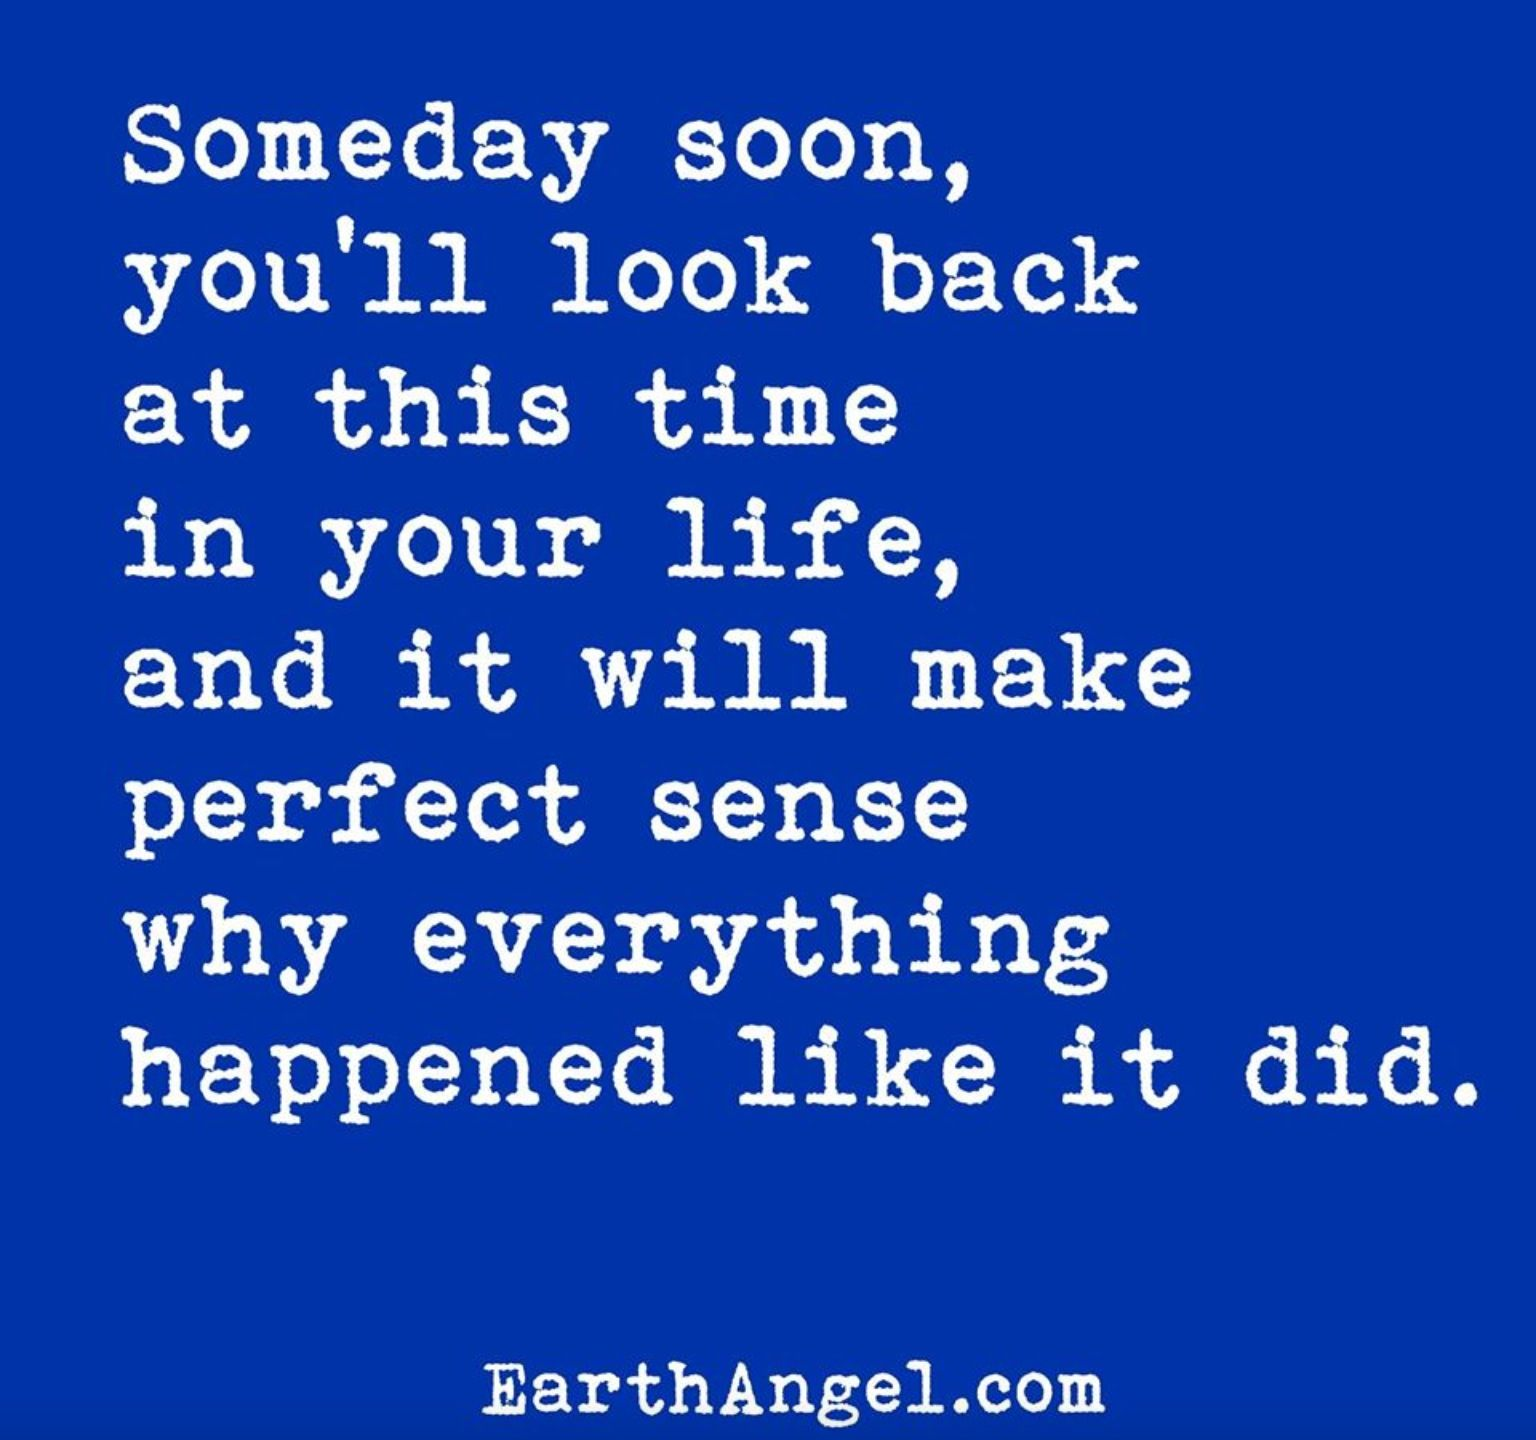 I believe things happen for a reason